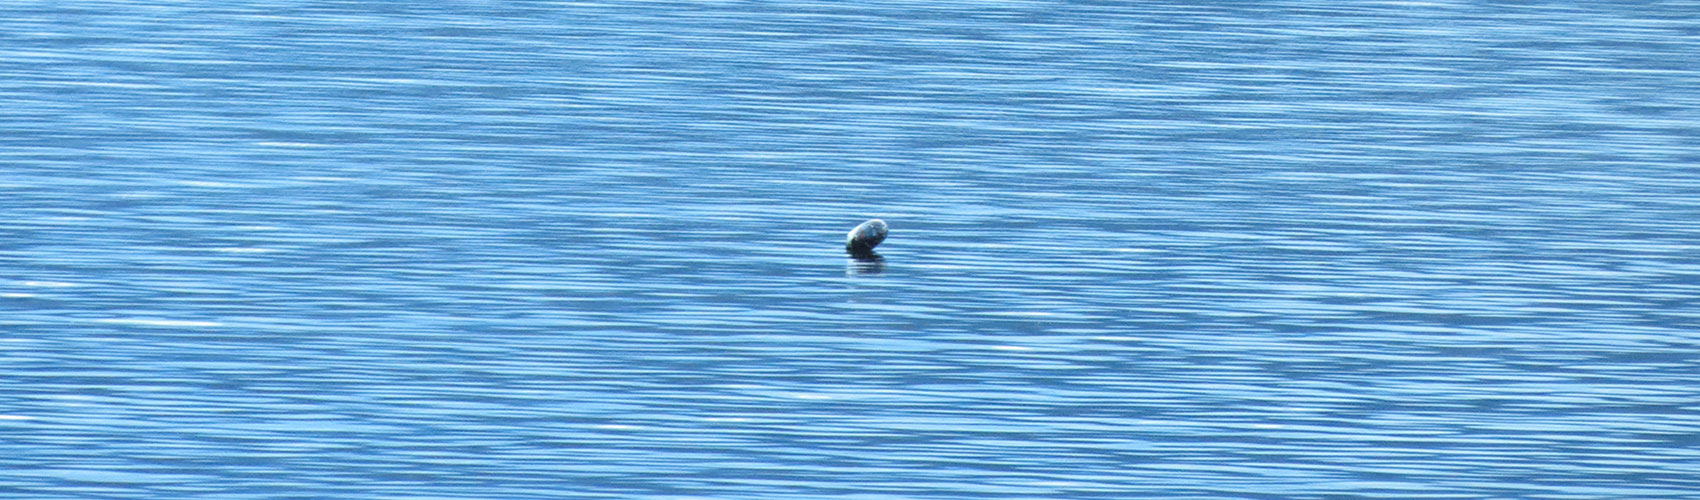 Ogopogo picture taken on May 24, 2015 - number three in series of 4